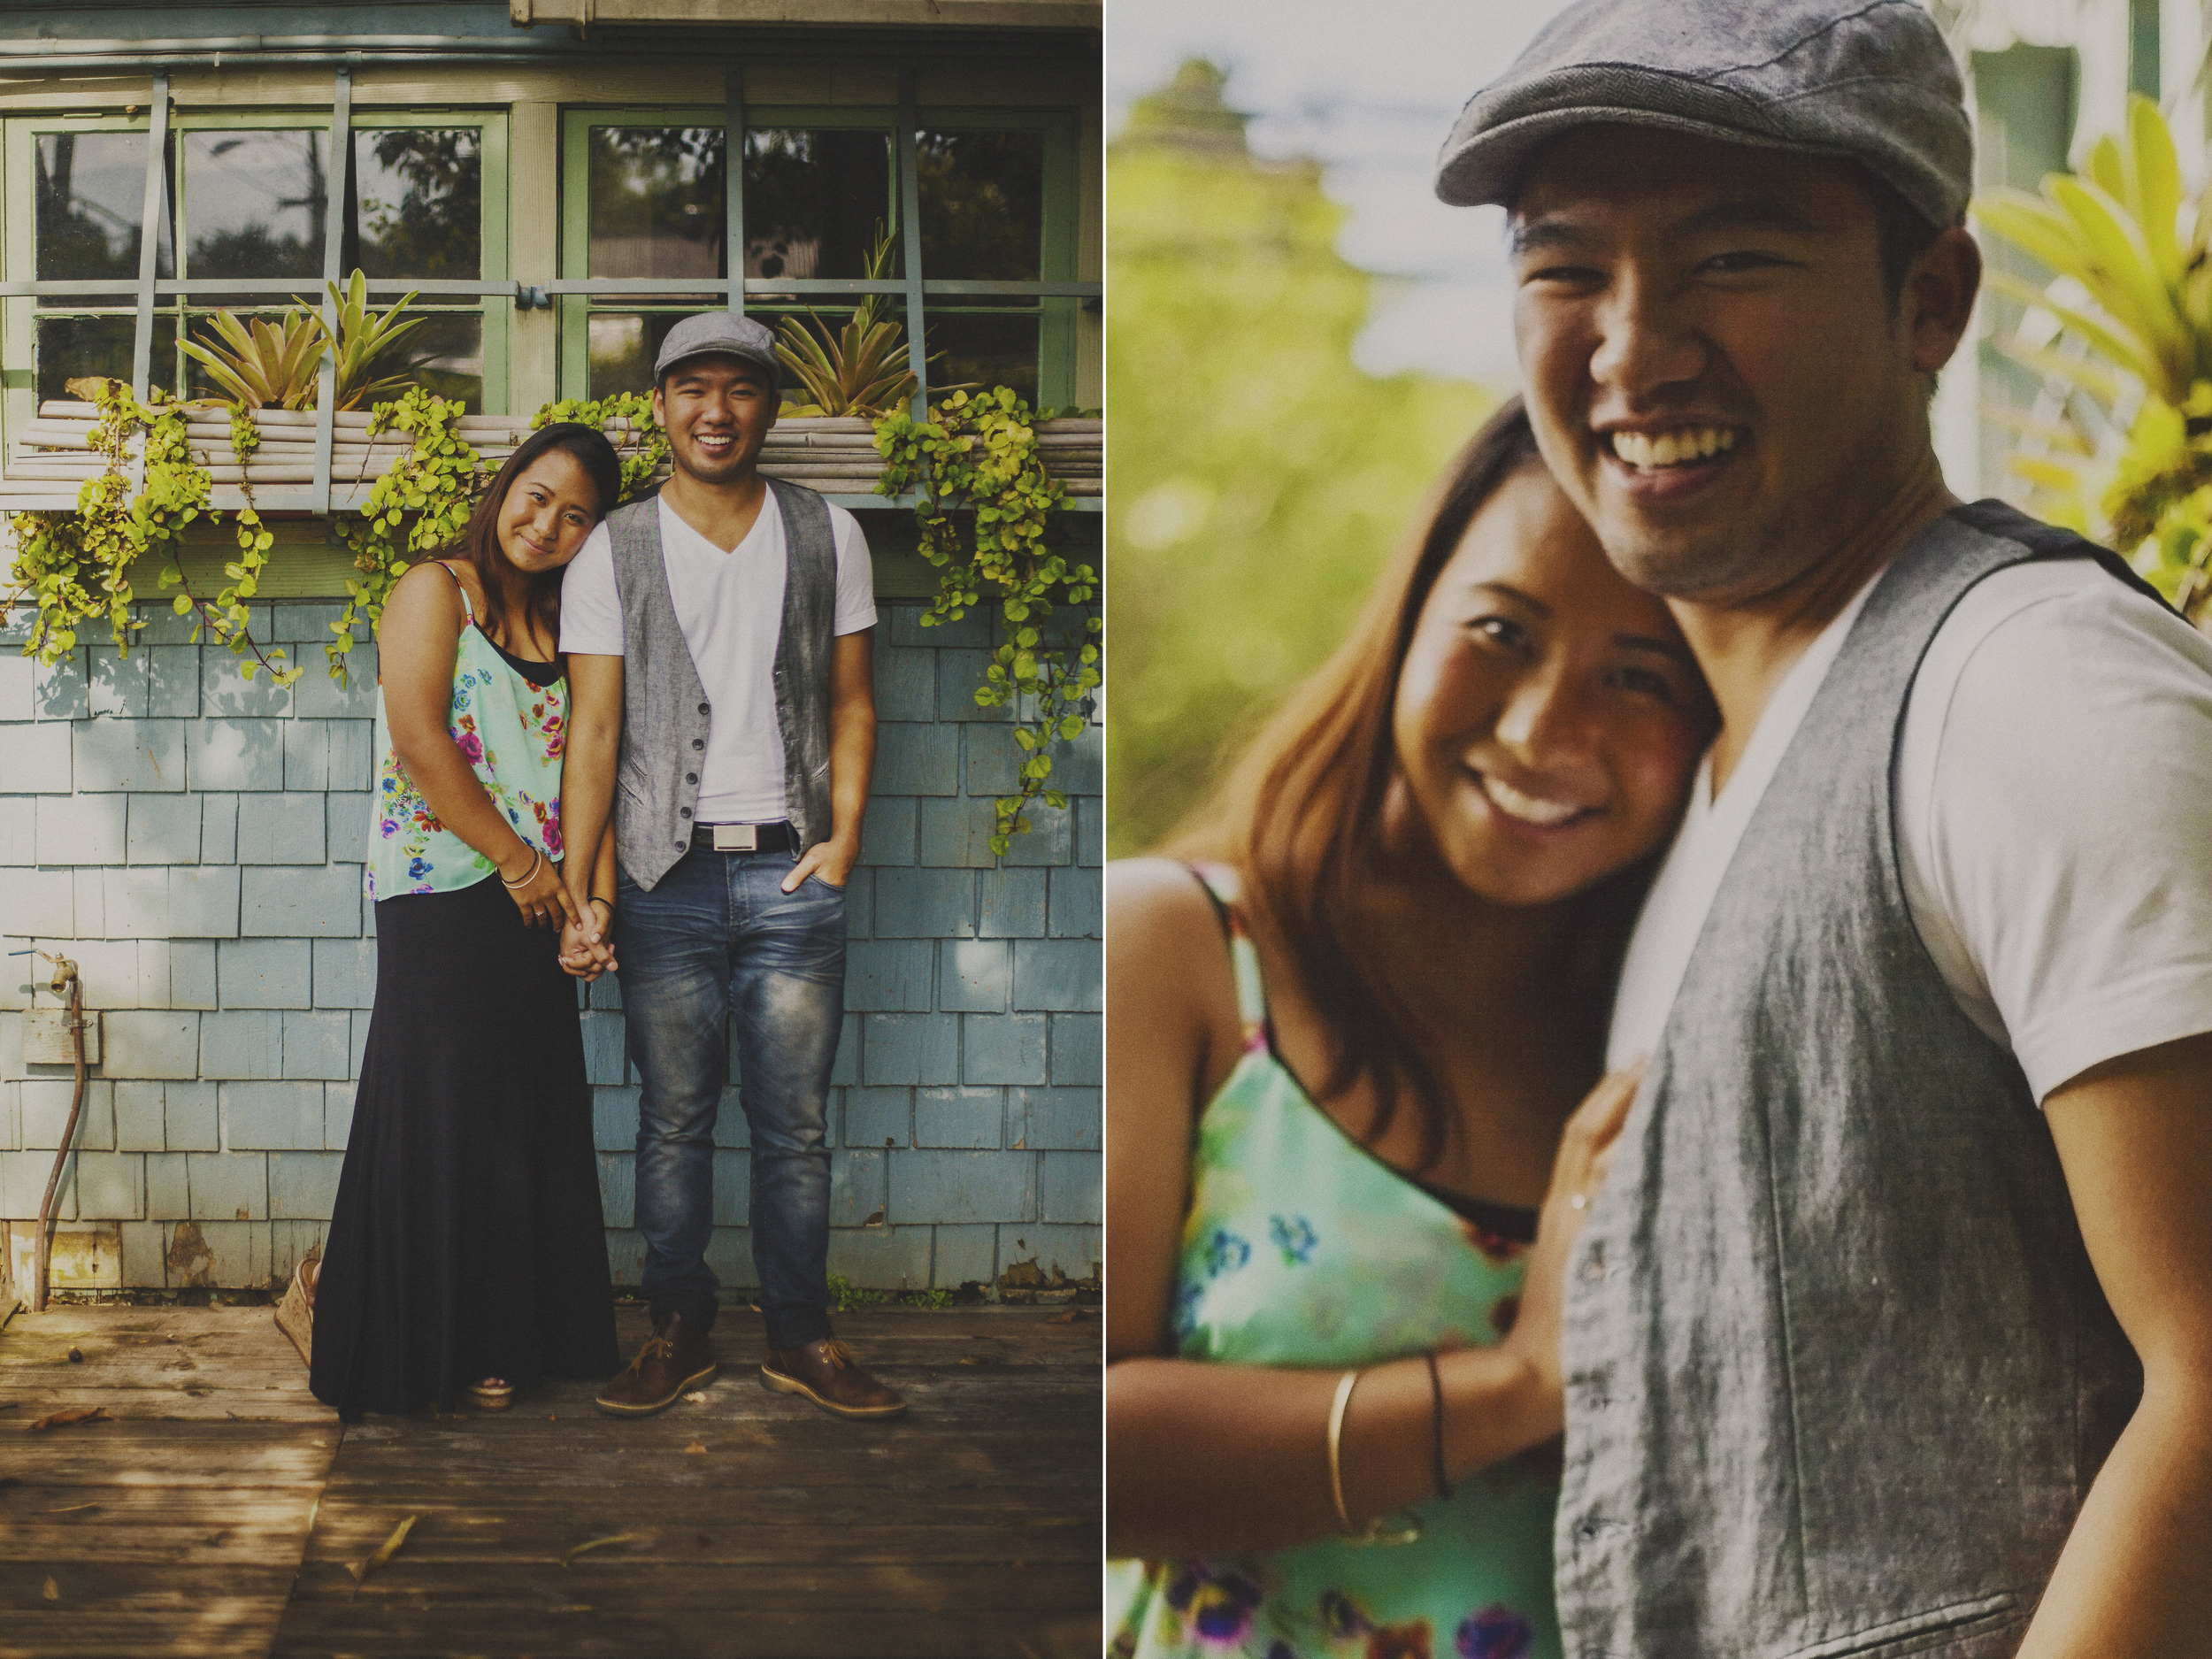 angie-diaz-photography-maui-upcountry-engagement-07.jpg